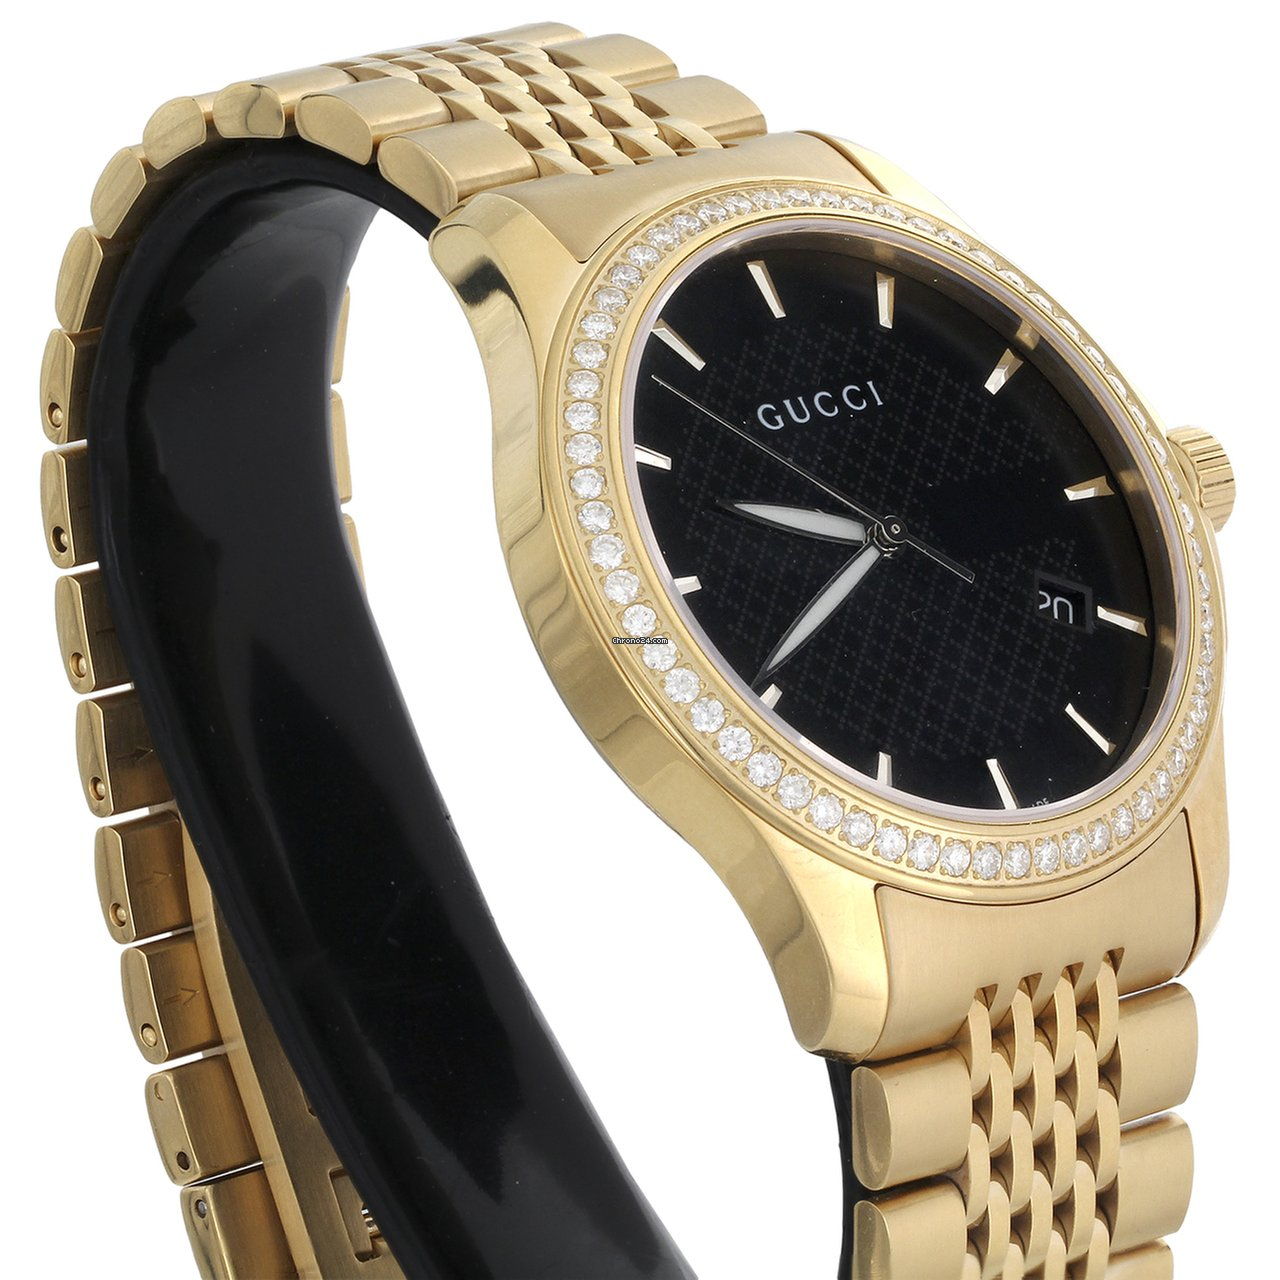 d86b57a311f Gucci Ya126402 Diamond Watch Black Dial 38mm Stainless Steel... for AU   2